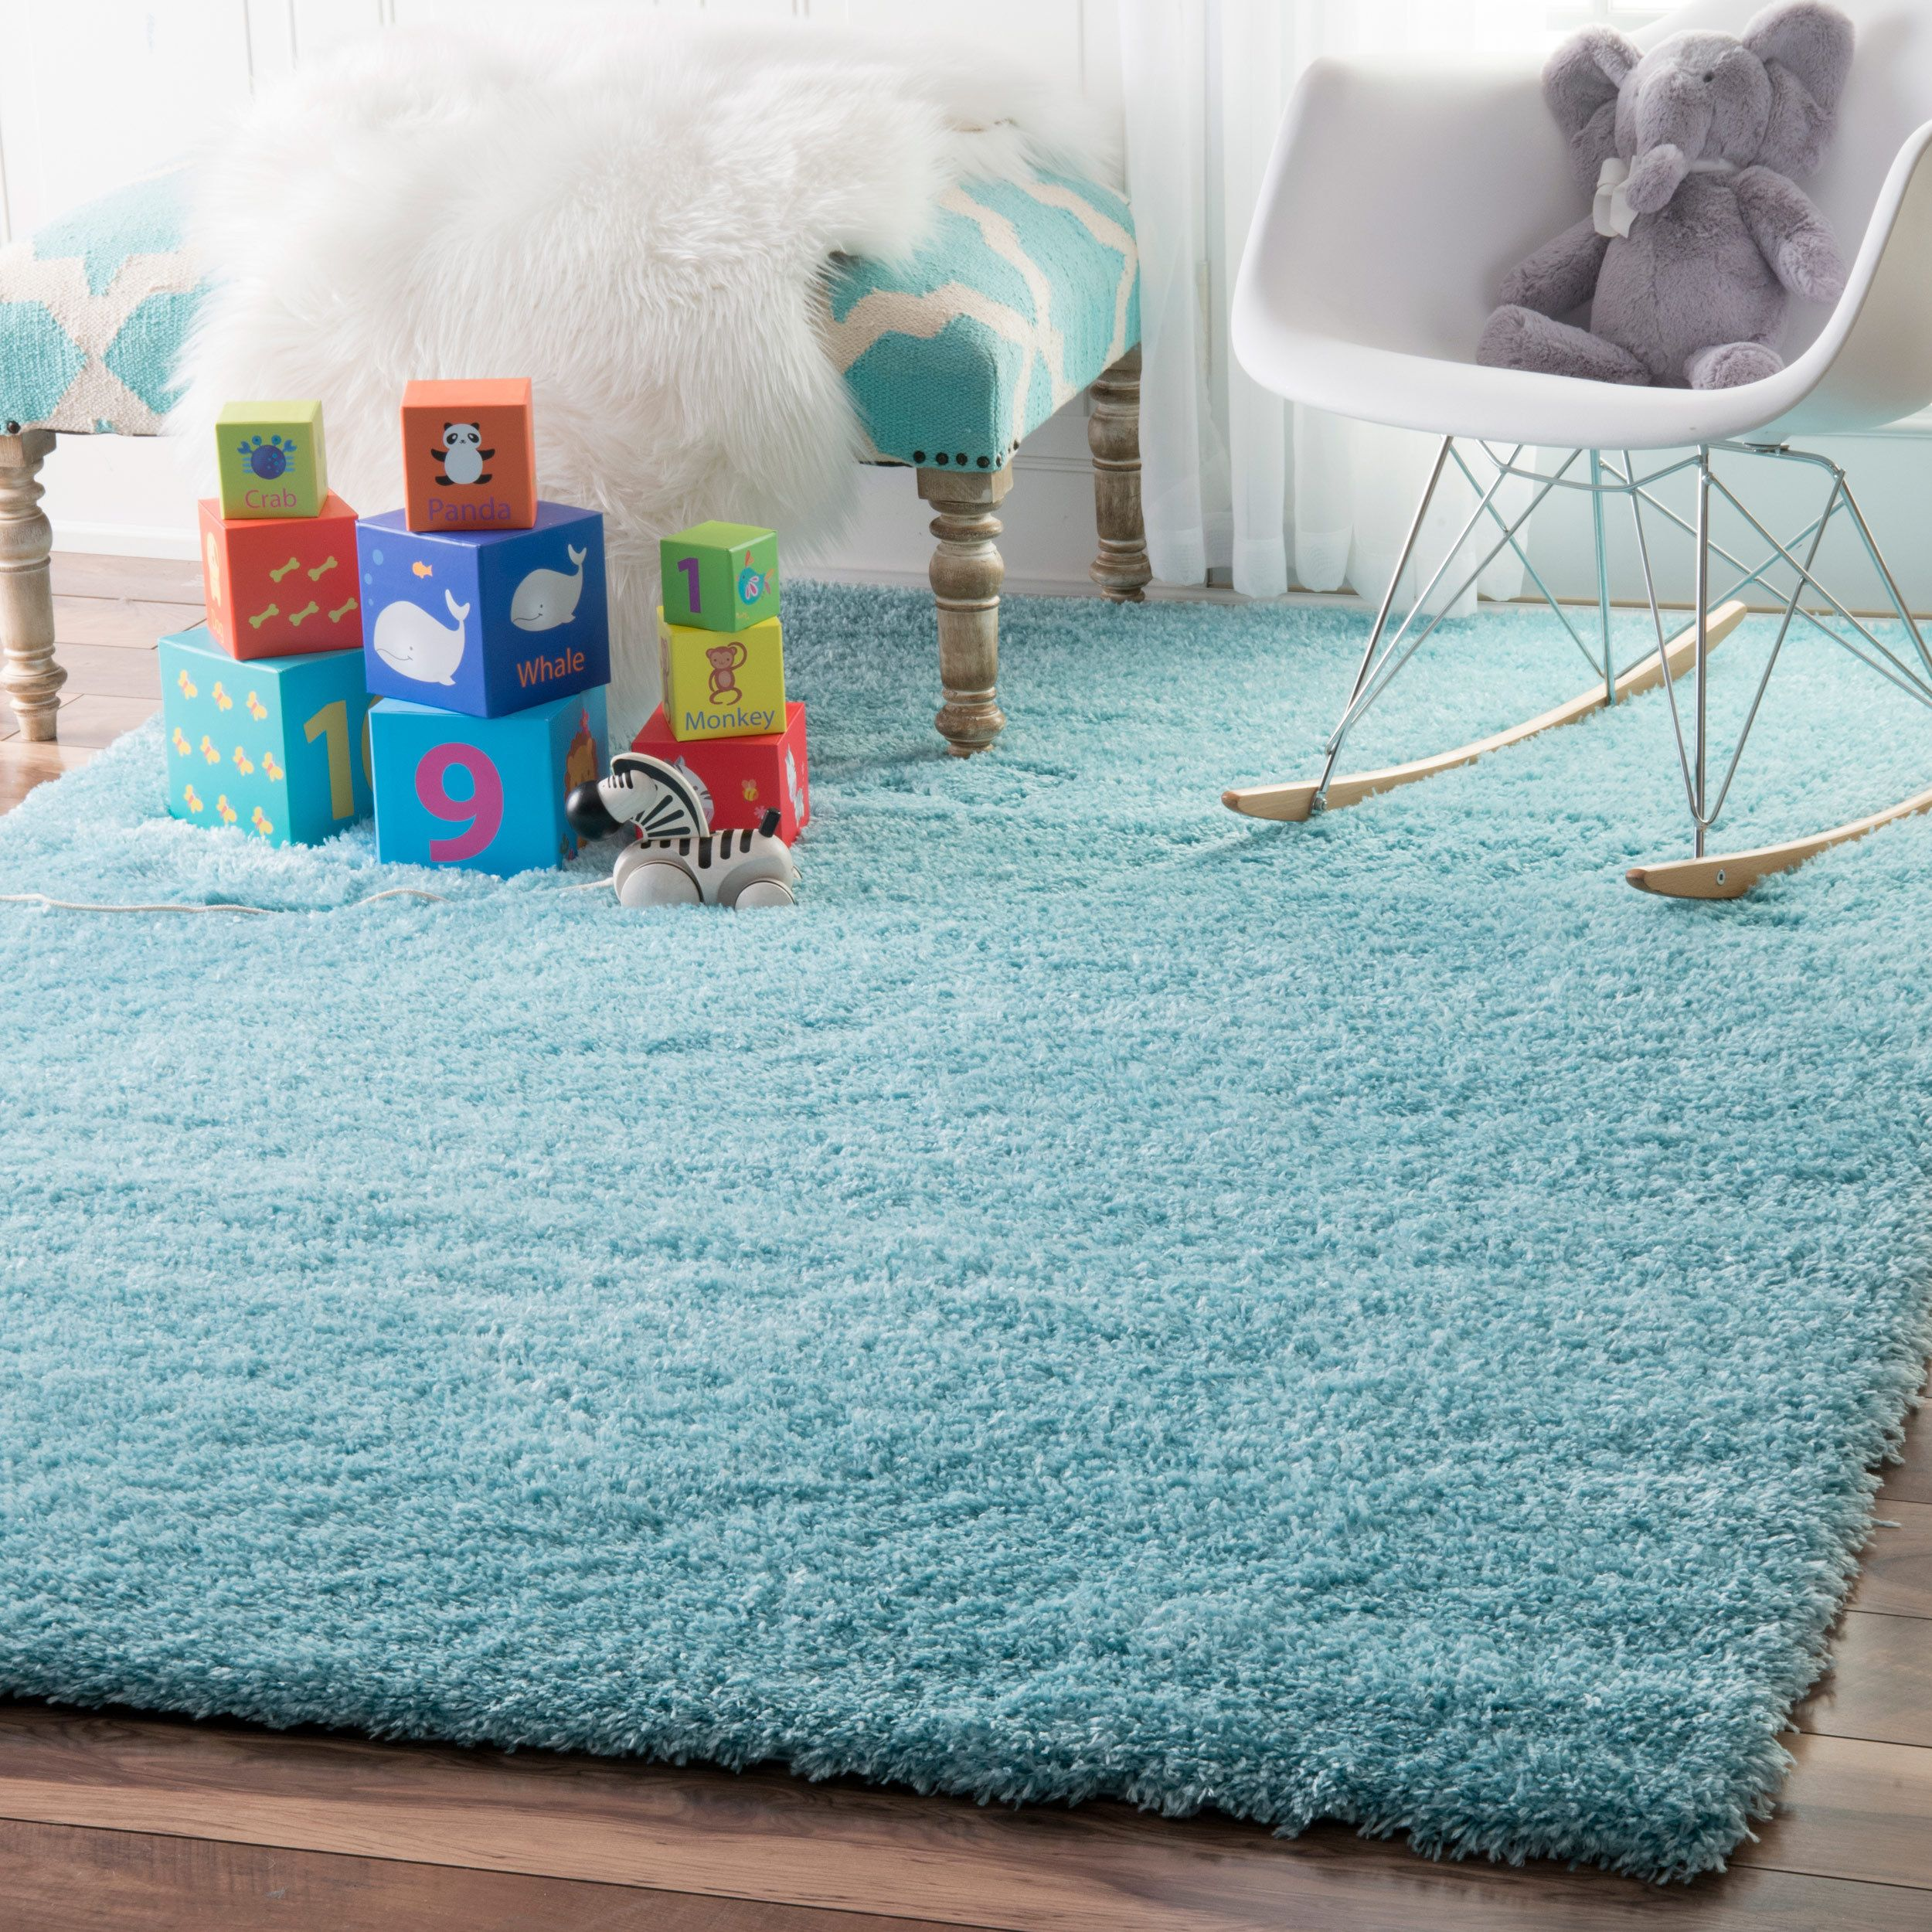 Nuloom Soft And Plush Cloudy Solid Baby Blue Rug 5 X 8